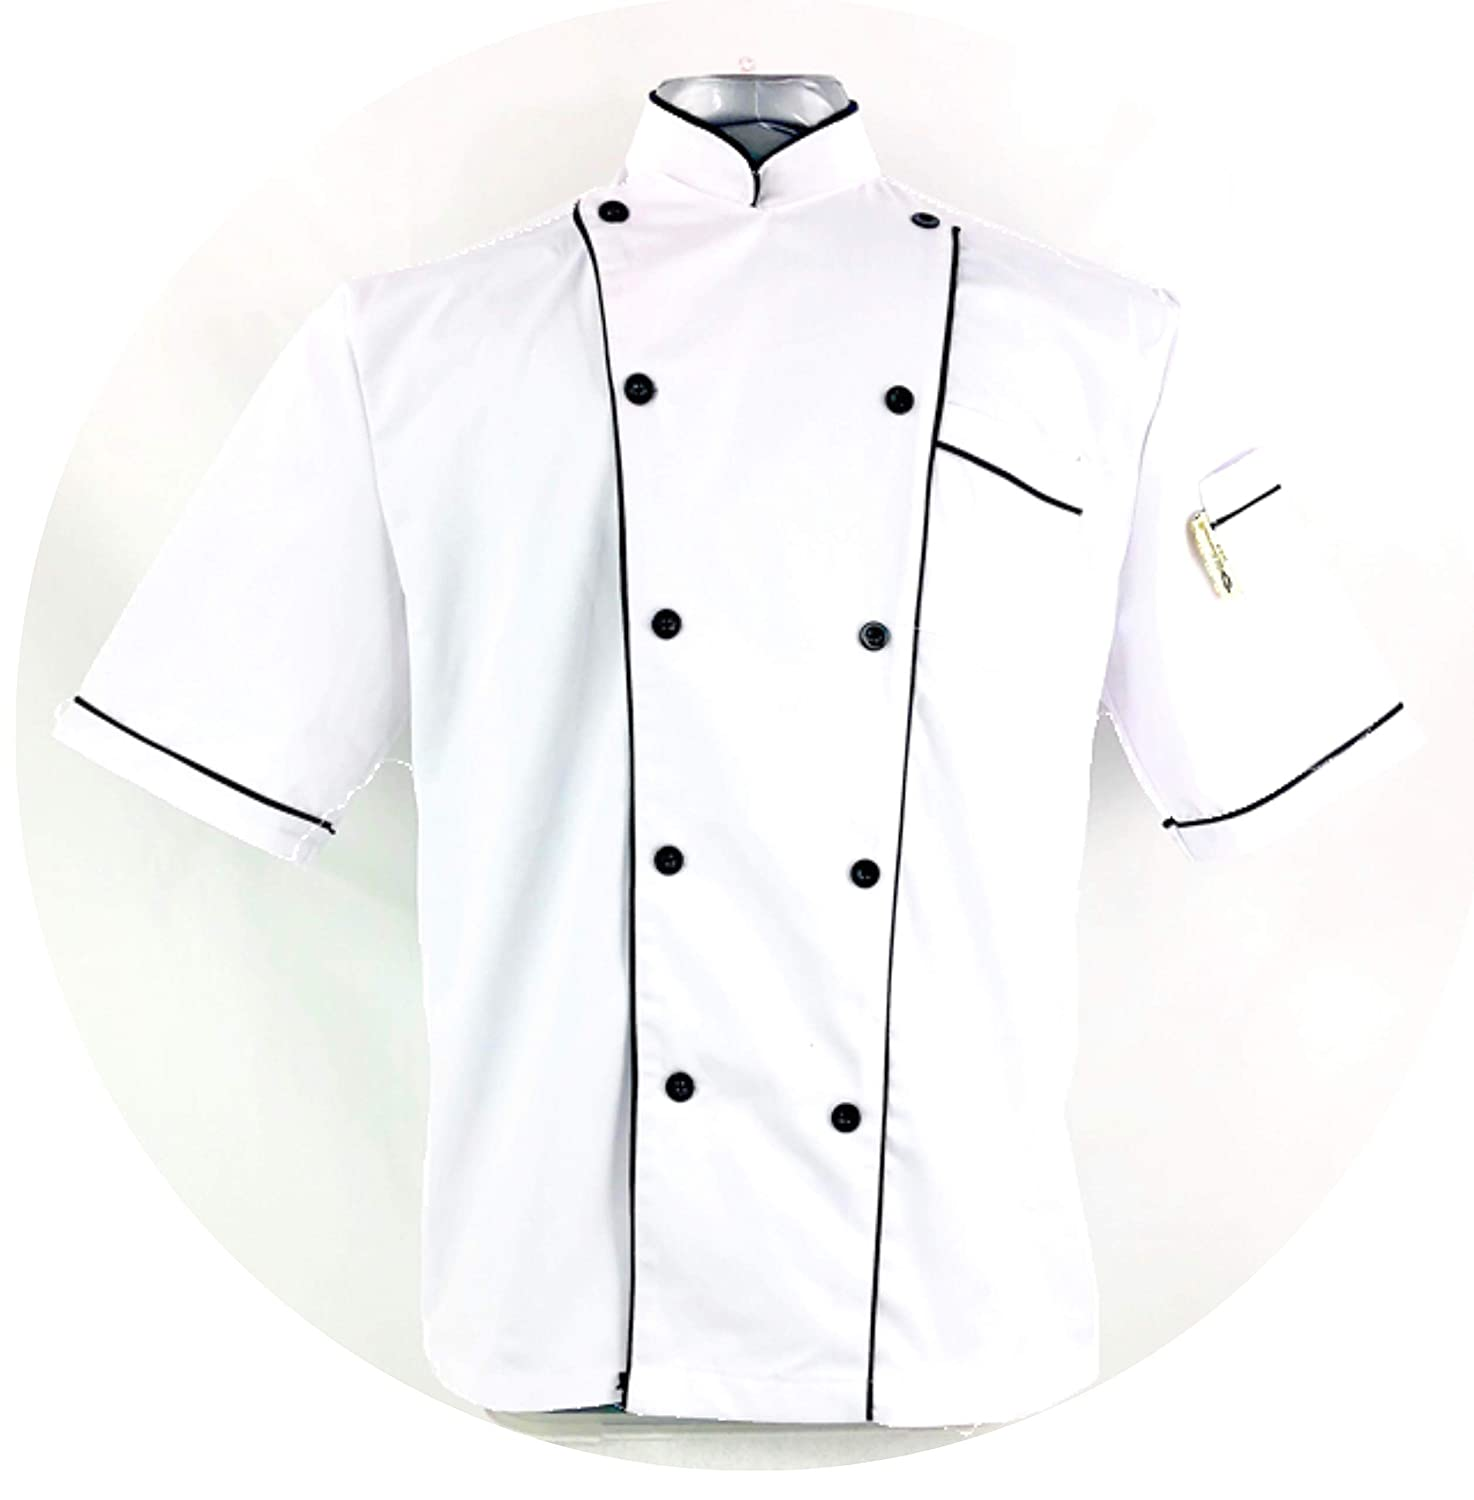 Uniform Chef Coat Unisex Short Sleeve Catering Jackets for Food Staff 180128006